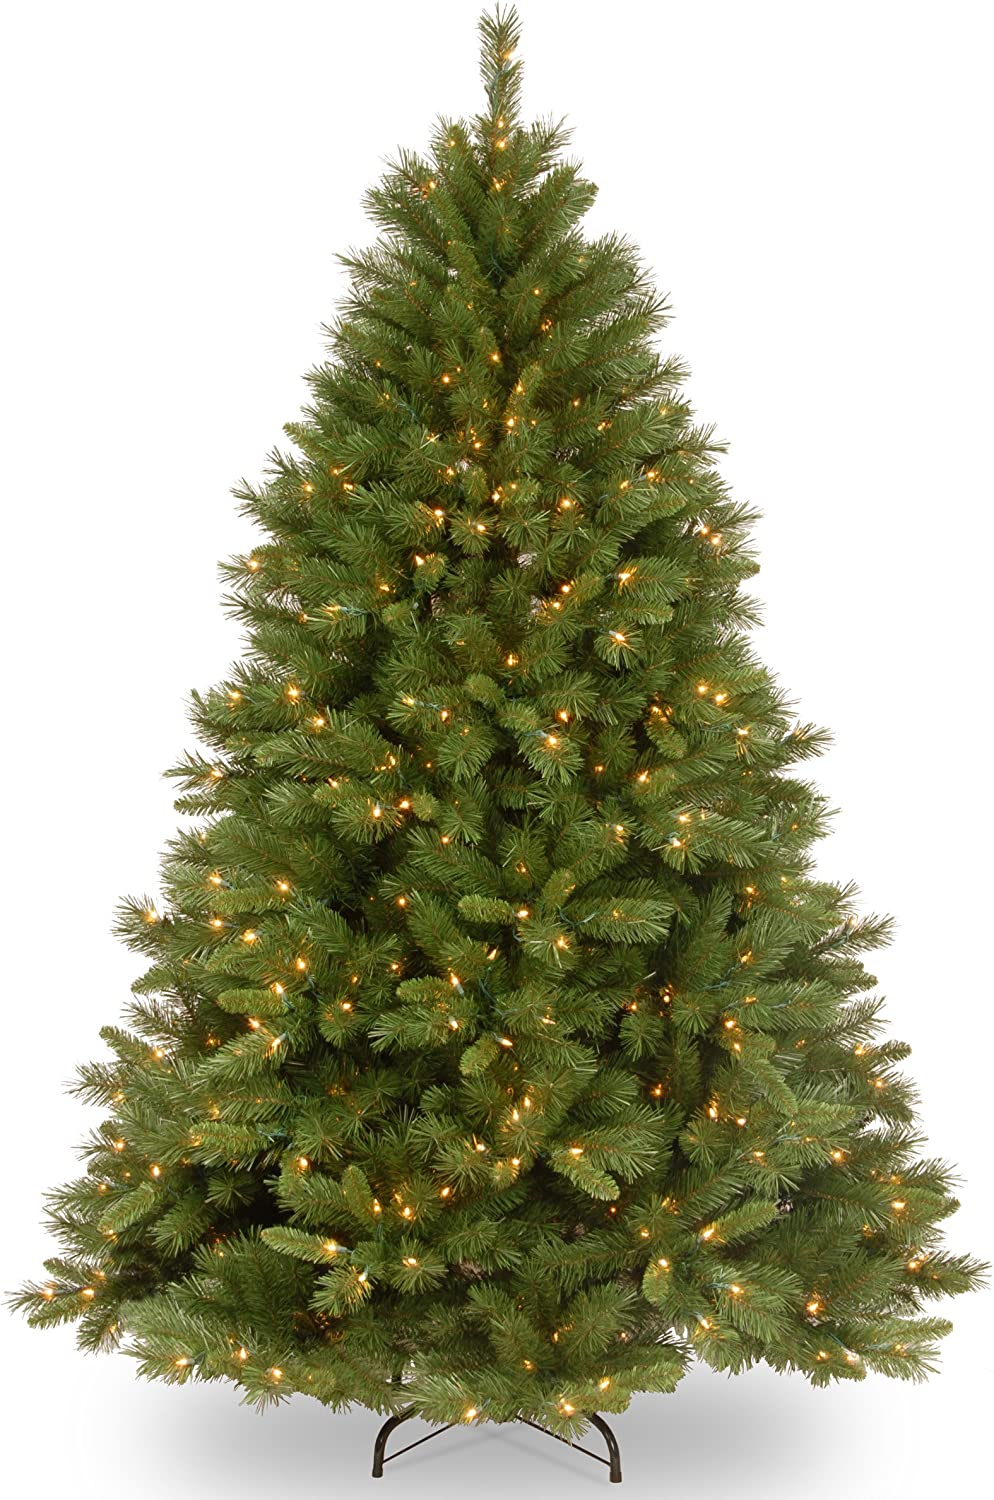 National Tree 2021 new WCH7-300-45 San Francisco Mall Christmas ft Green 4.5